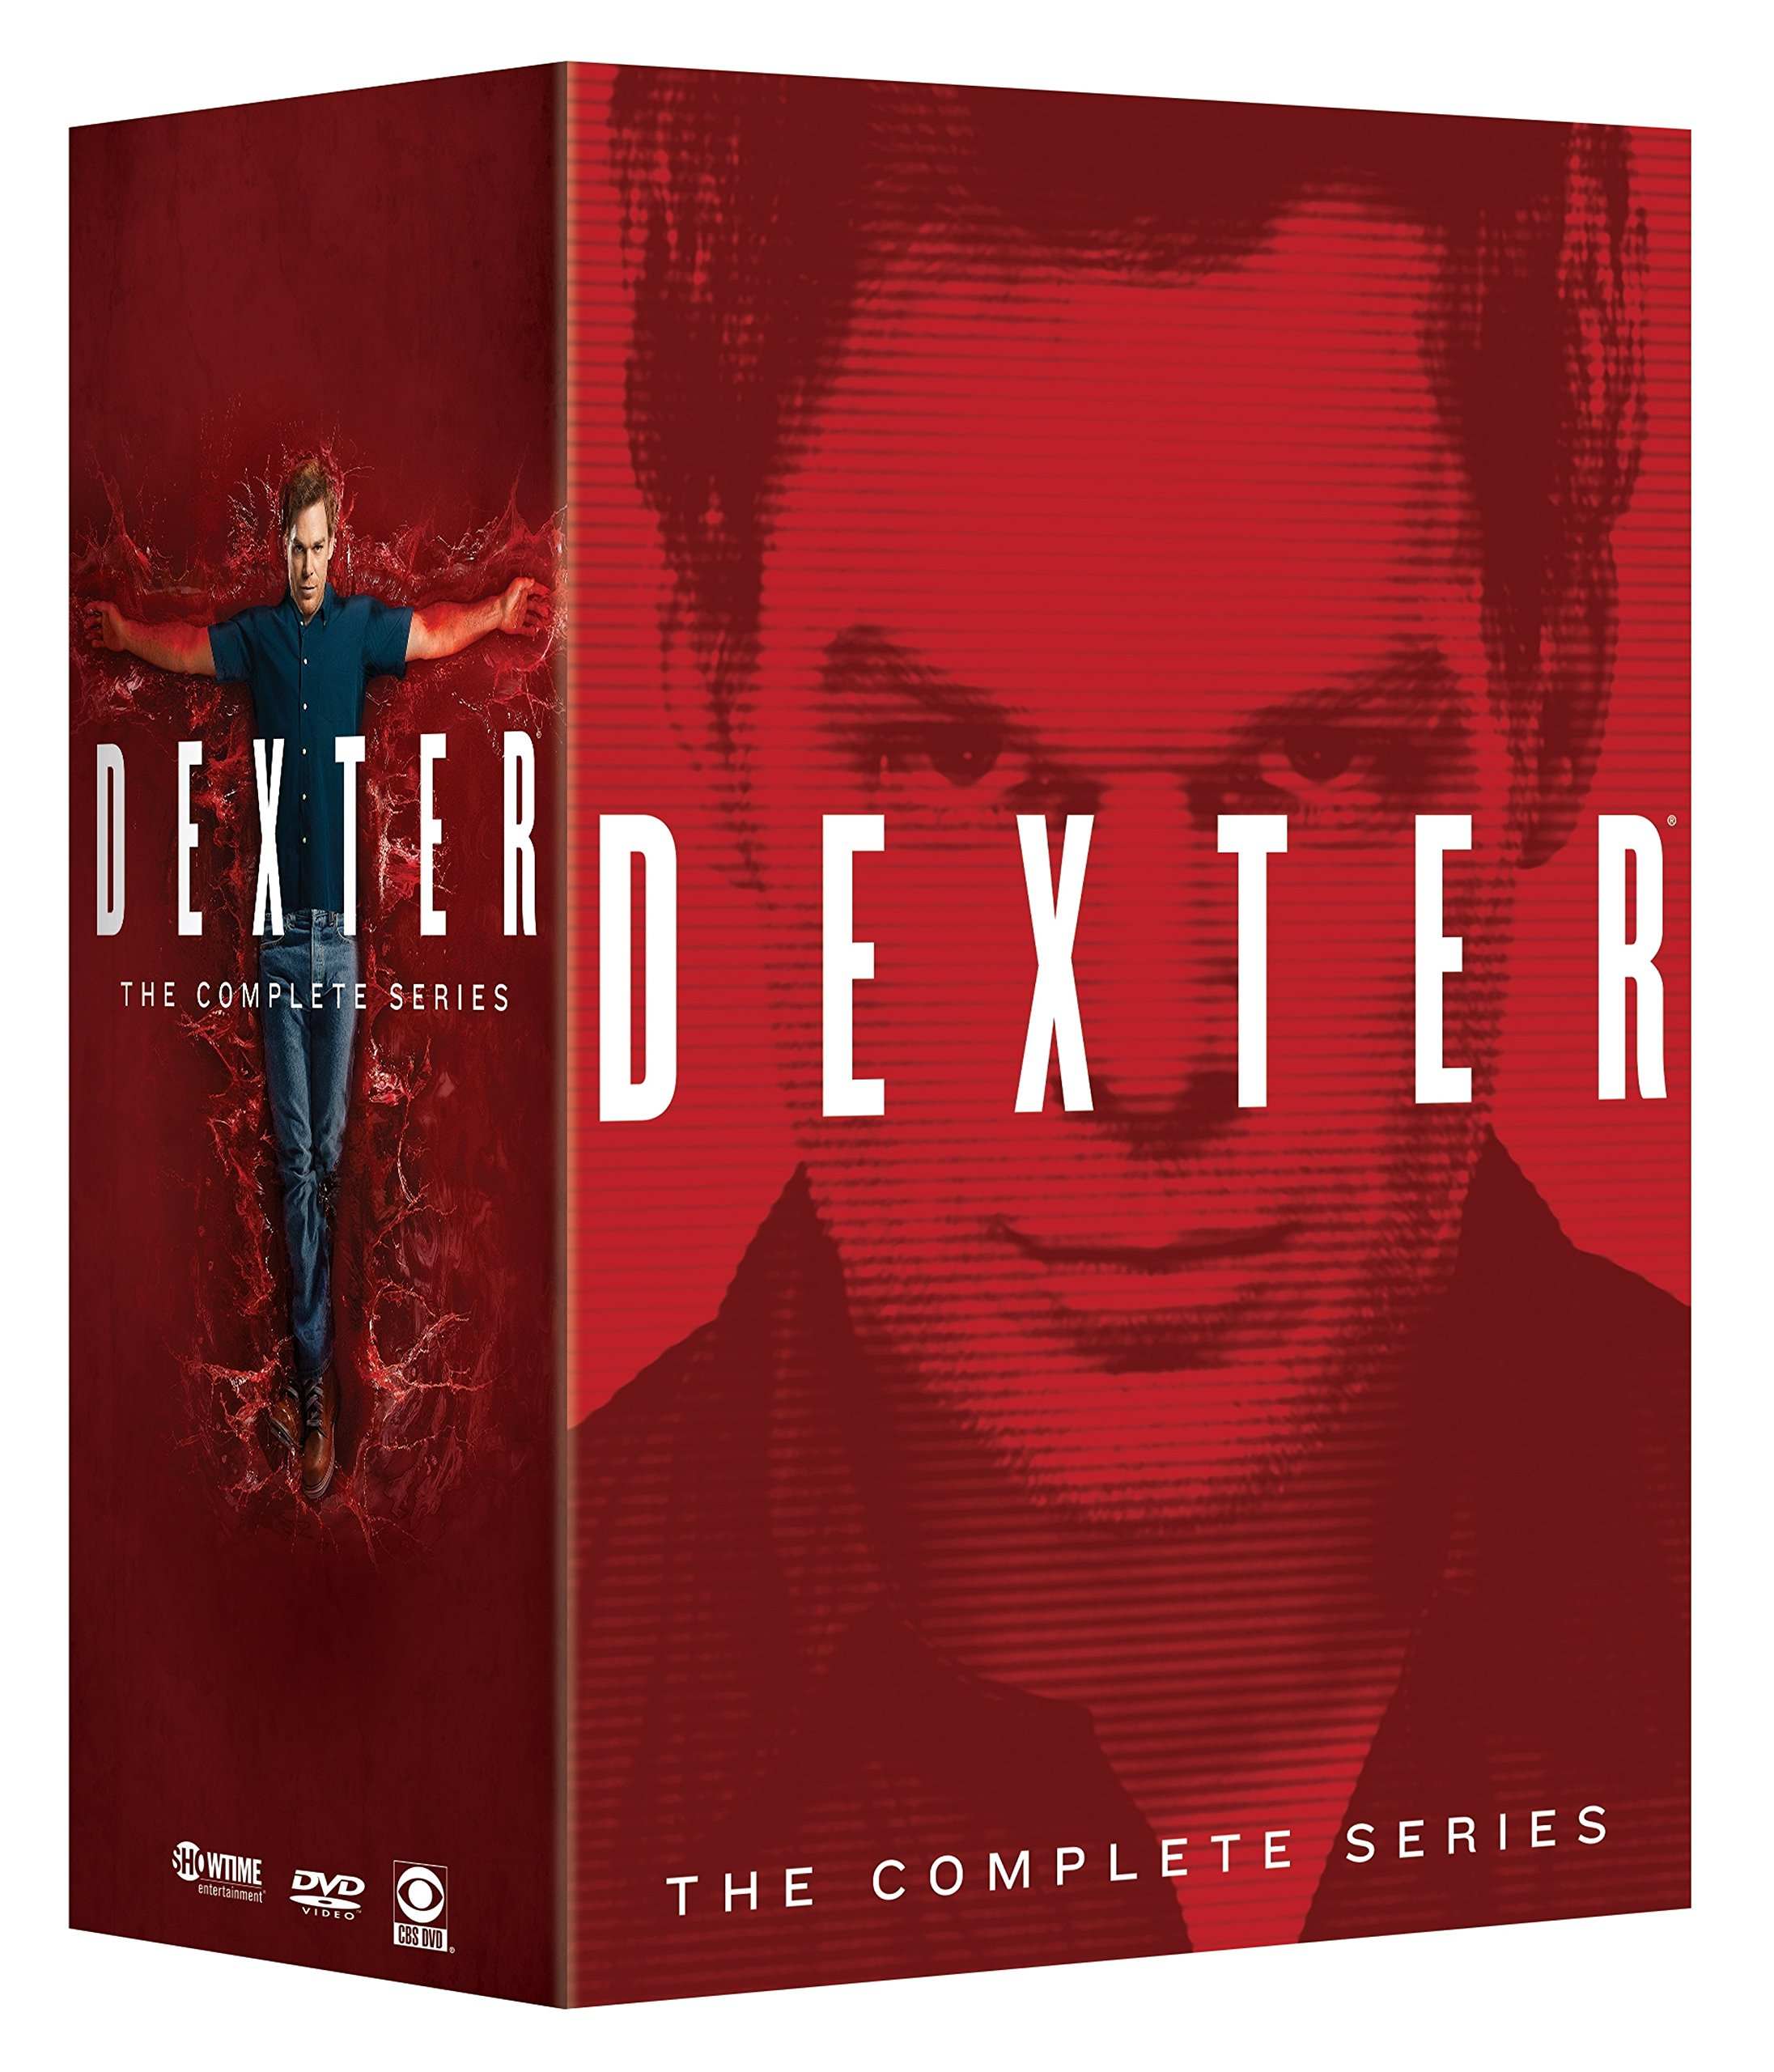 Dexter: The Complete Series by Paramount